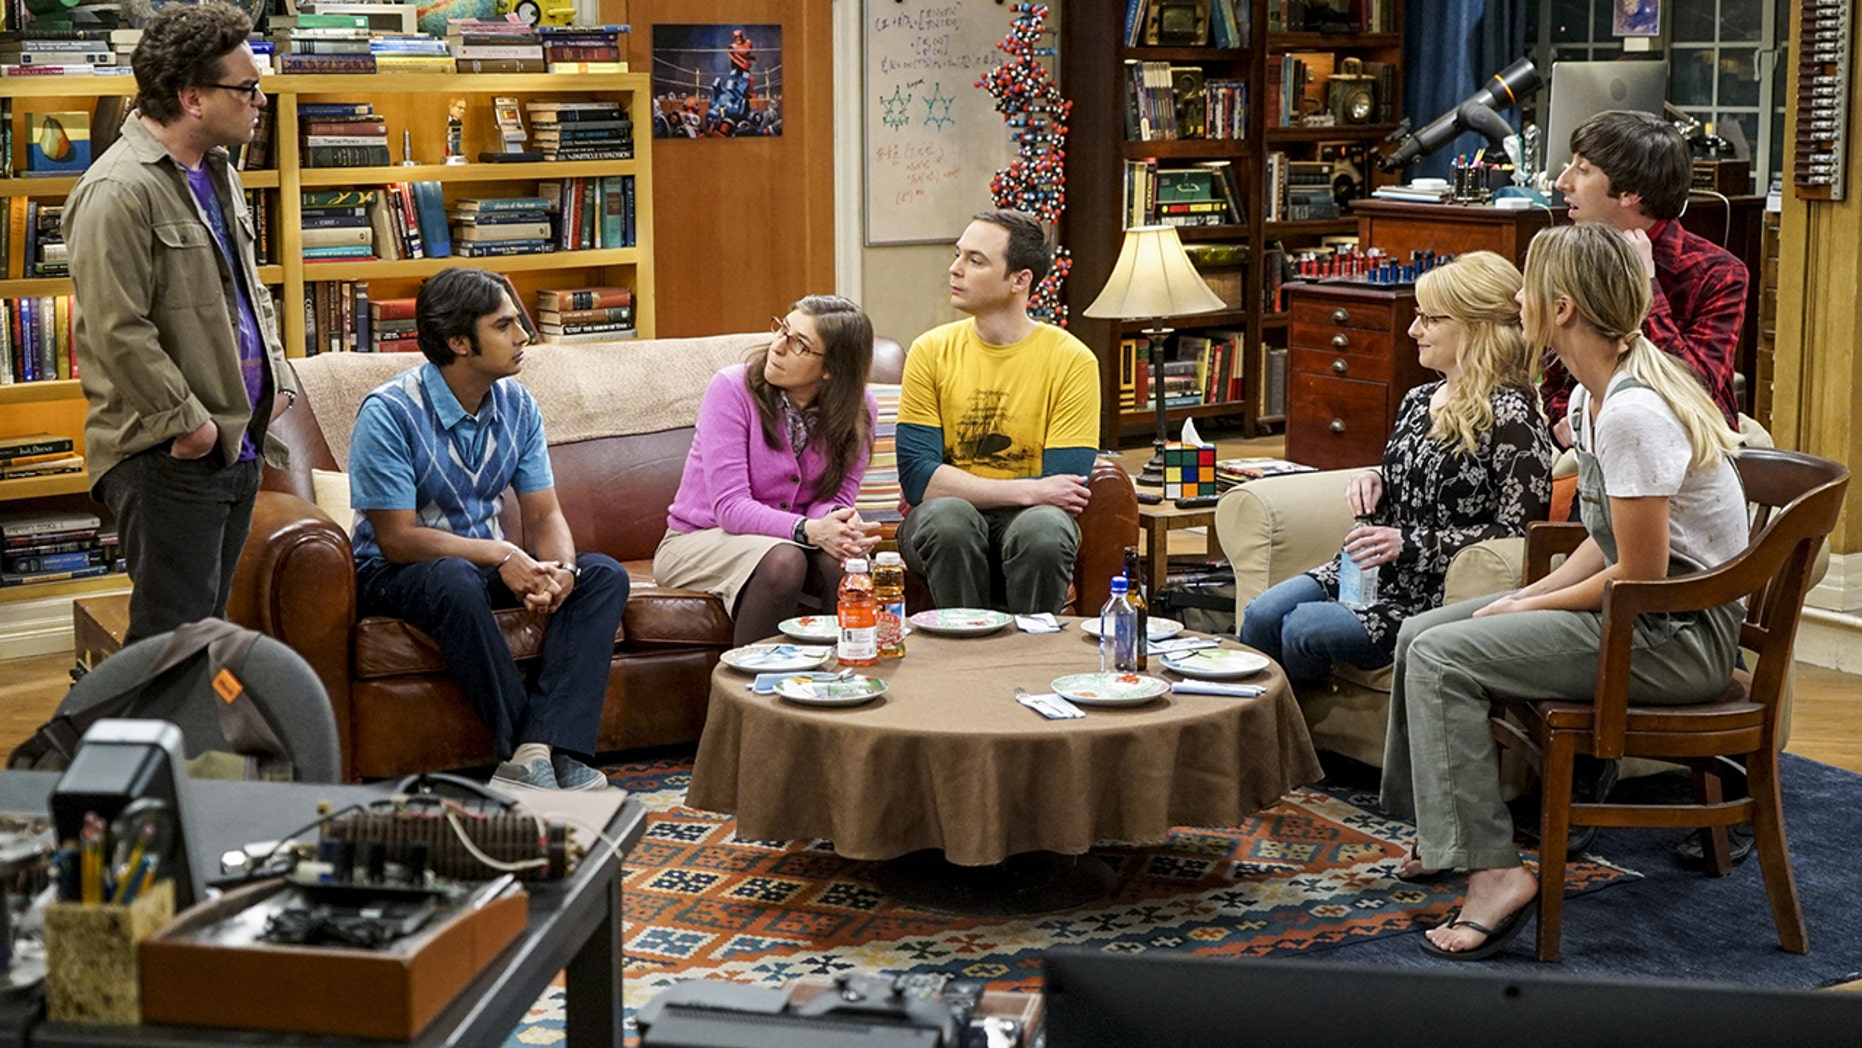 'Big Bang Theory' will end after season 12, Warner Bros. Television, CBS and Chuck Lorre Productions said in a joint statement on Wednesday.